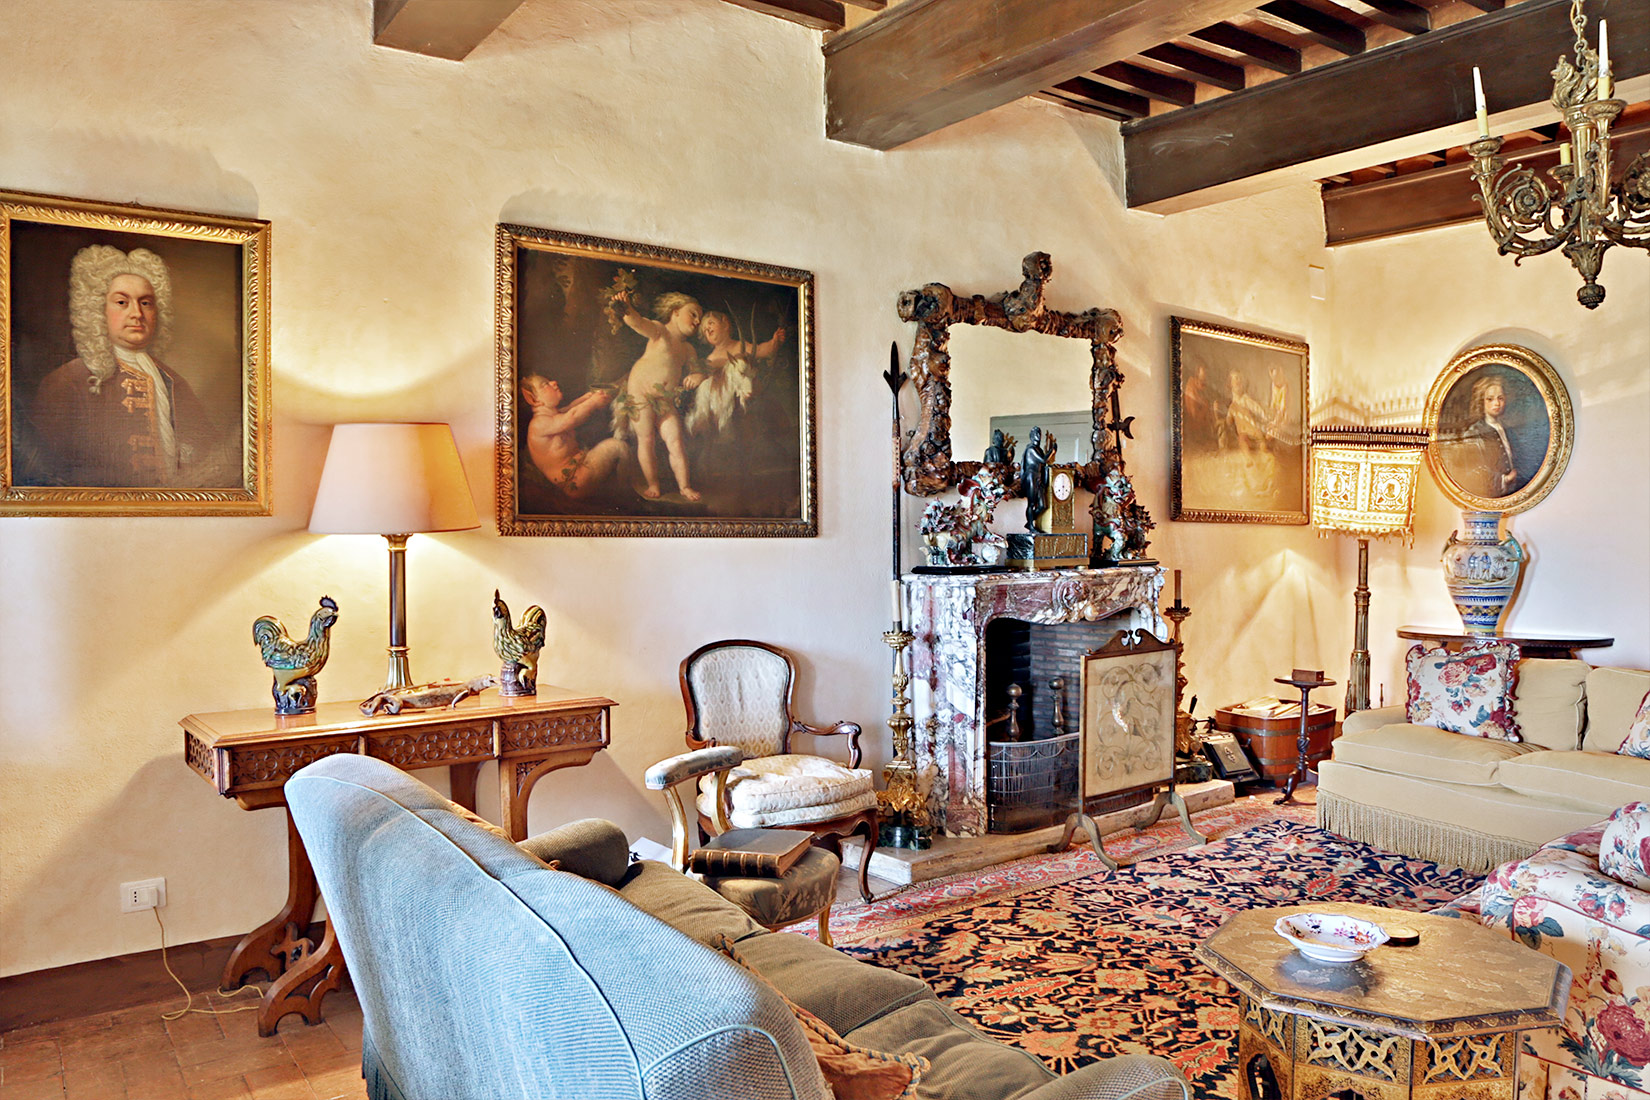 Casa-Padronale-sitting-room